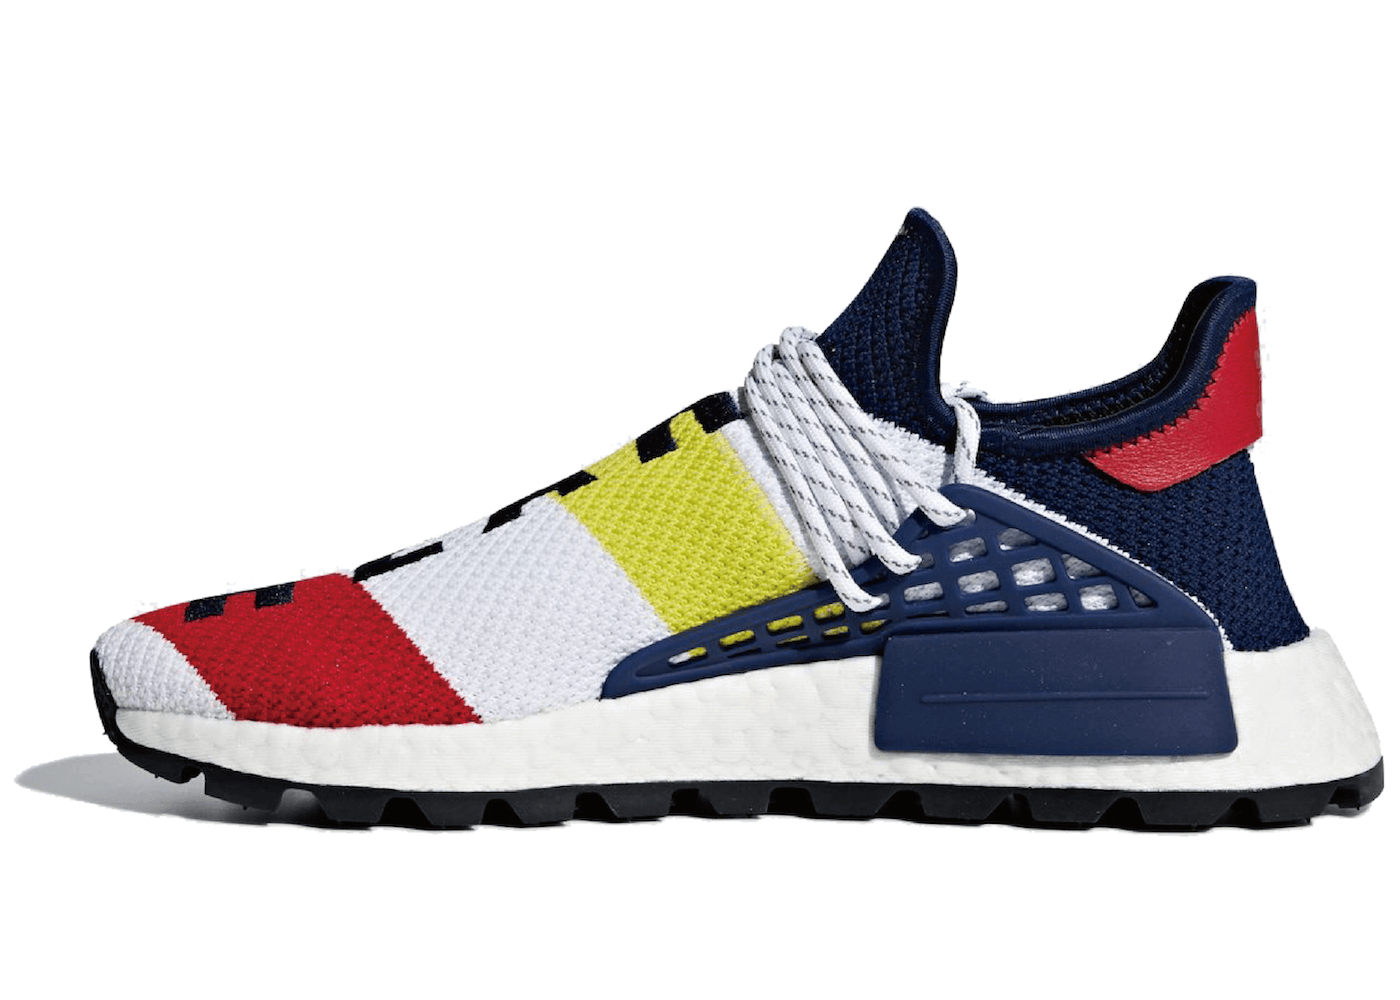 Adidas NMD Hu Pharrell x Billionaire Boys Club Multi-Colorの写真